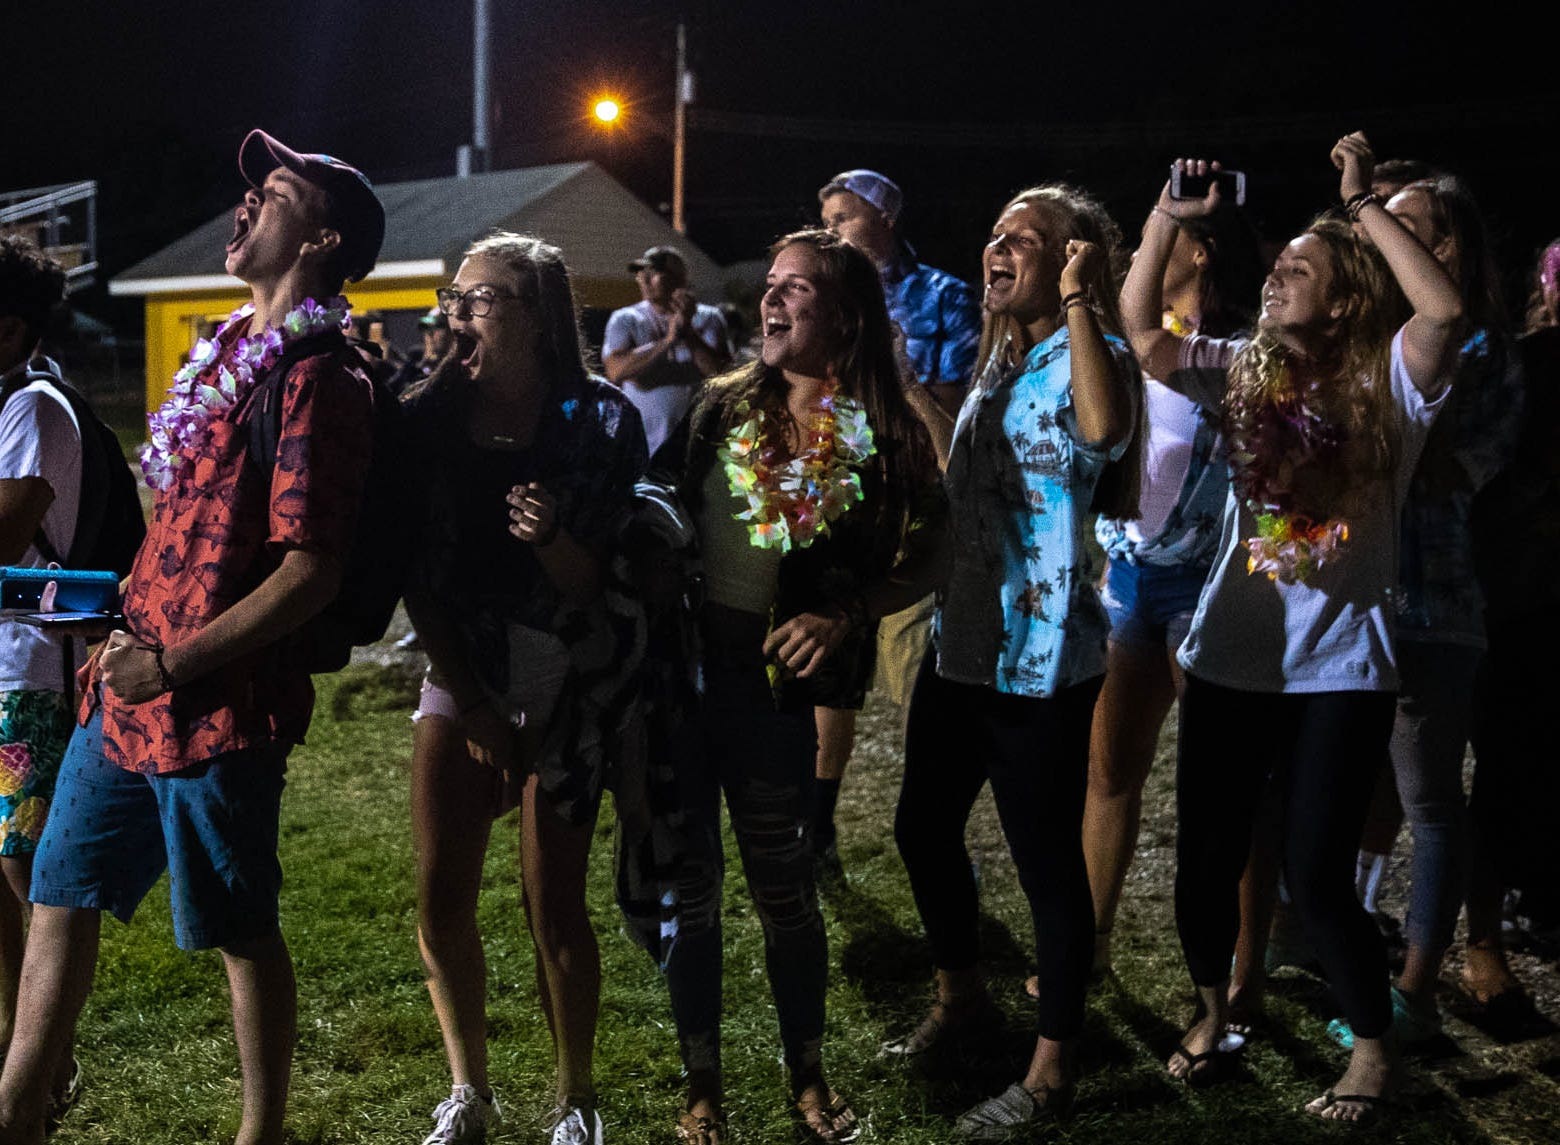 The Delone student section cheers for their team as Delone players walk to the locker room after winning a game against York Suburban, Friday, Aug. 31, 2018, at Delone Catholic High School in McSherrystown. Delone beat York Suburban 62-0.